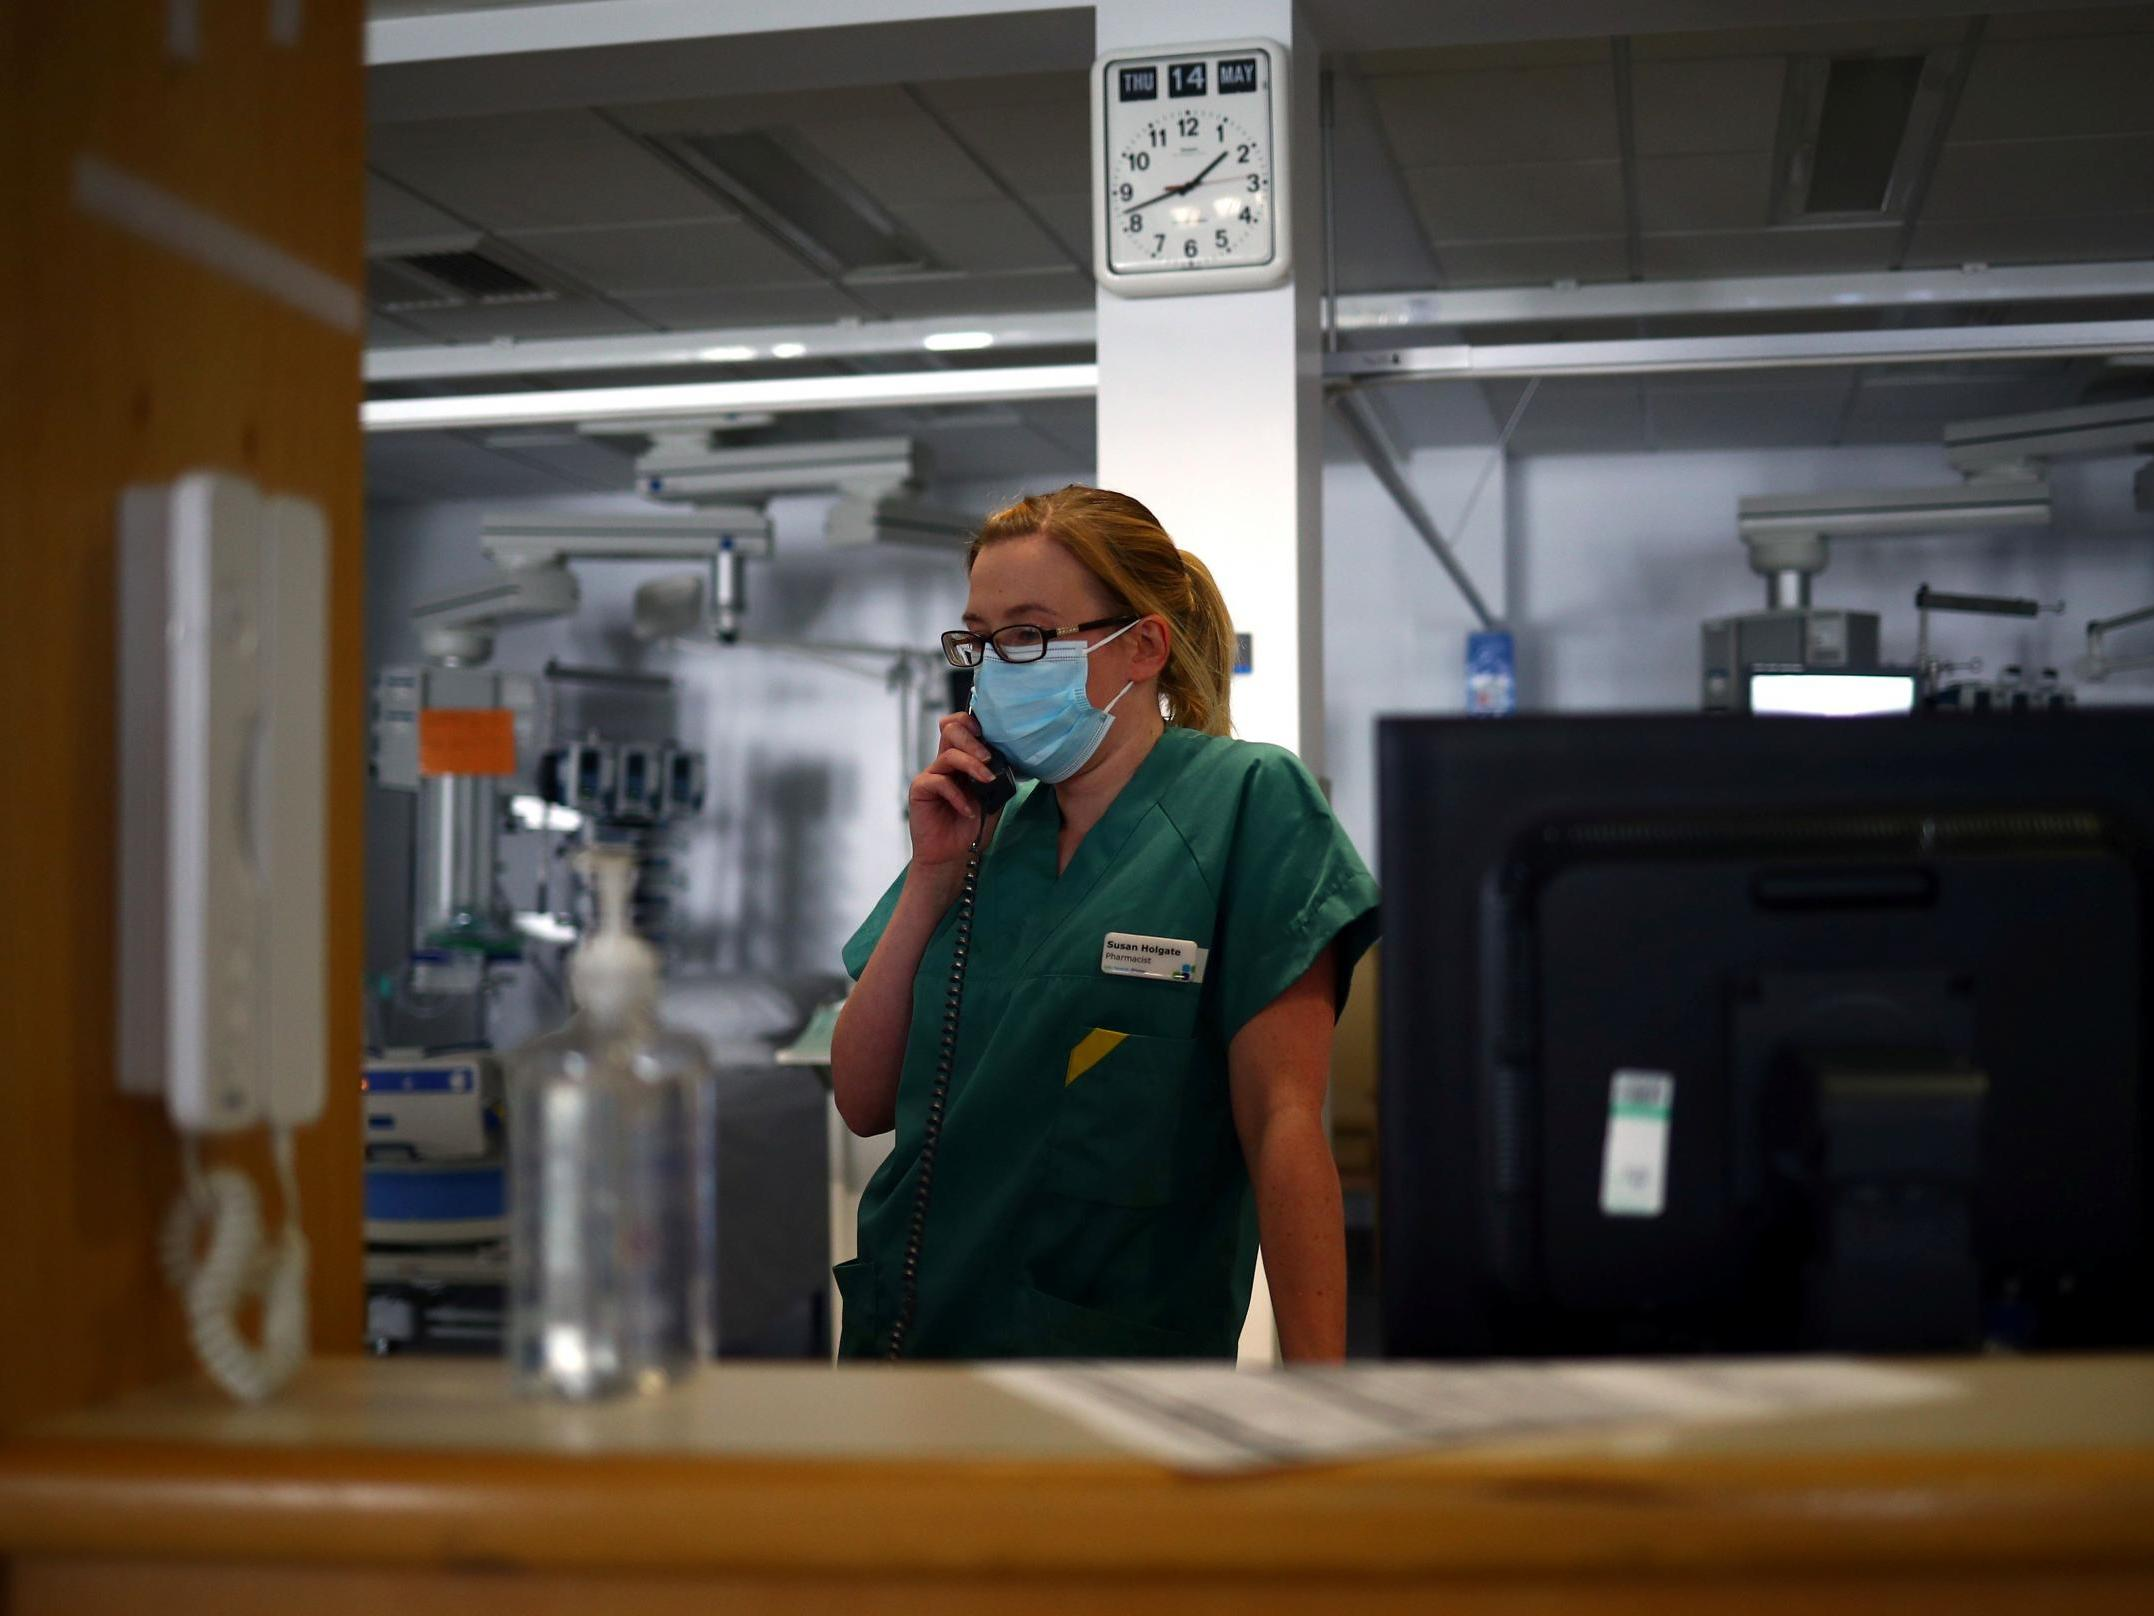 NHS chiefs criticise government for making policy 'on the hoof' after hospital mask ruling